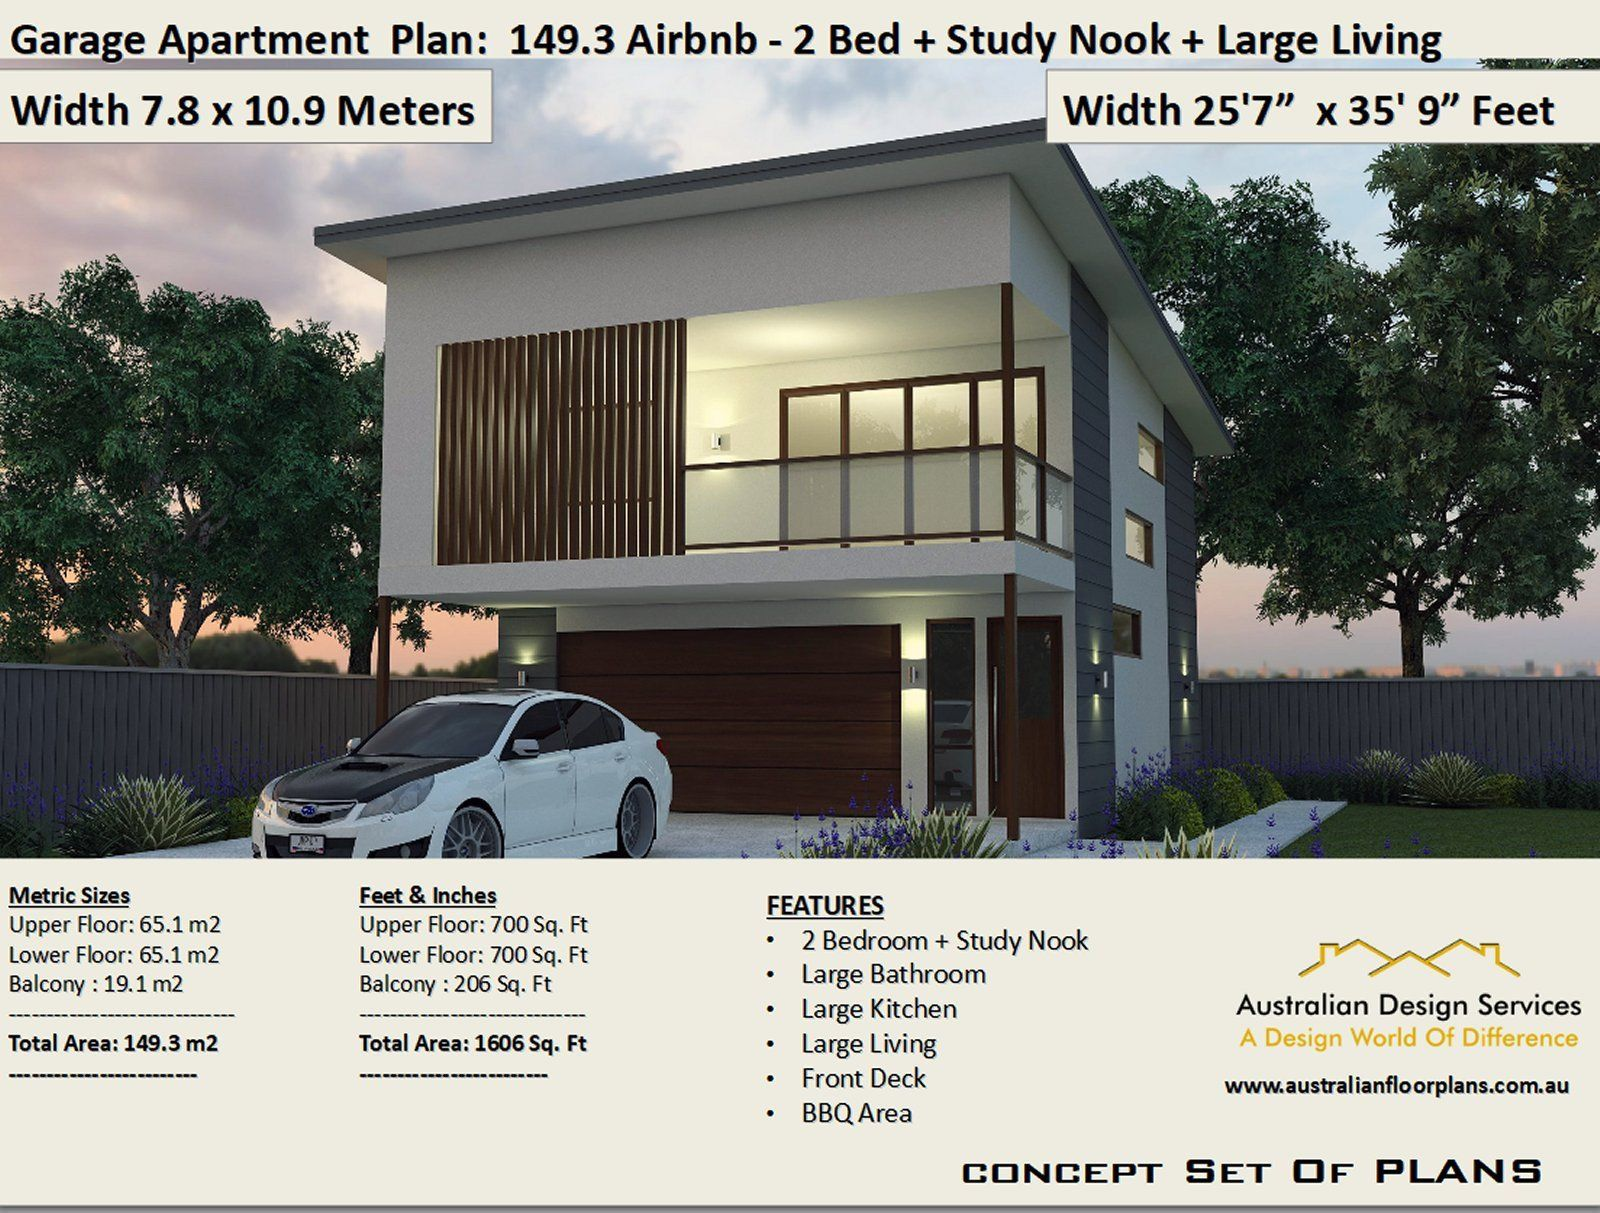 Best 2 Bed + Study house plan Area 149.3 m2 | 1606 sq foot | airbnb Apartment | Carriage house | 2 Bed Concept House Plans For Sale